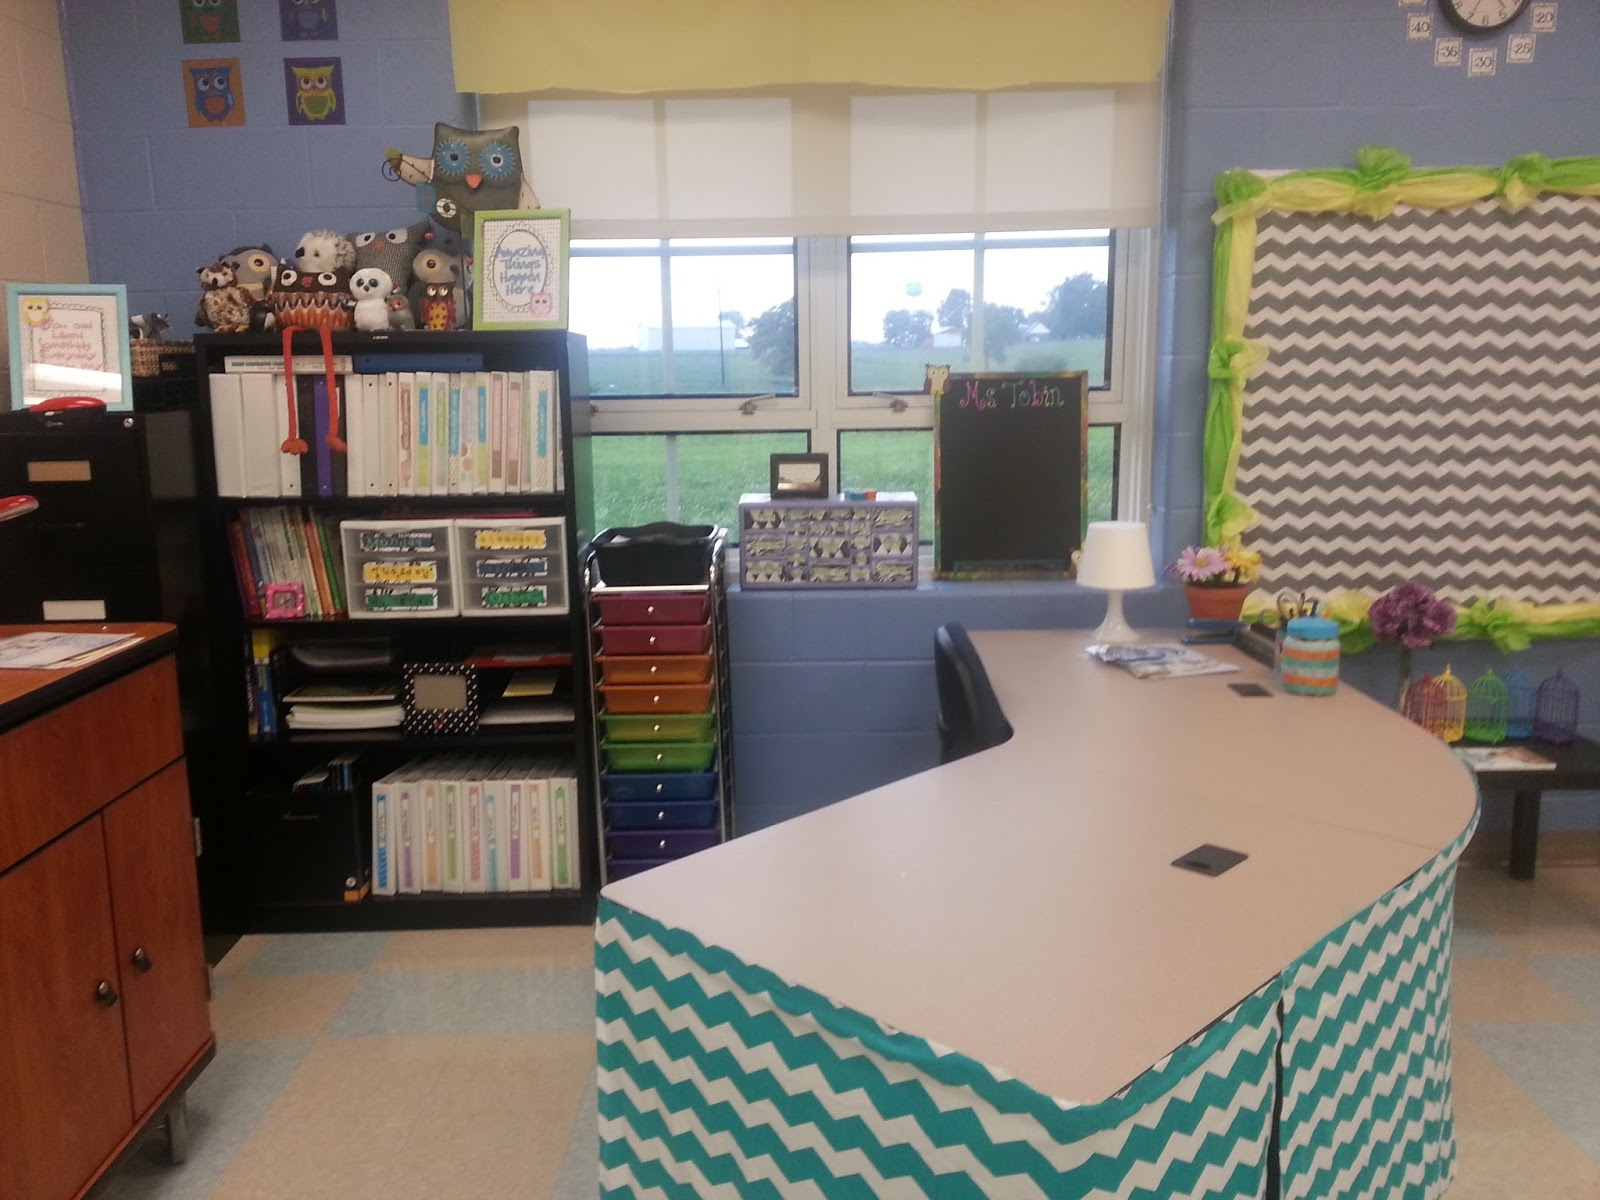 grade teacher post photo second desk ideas classroom reveal nest decor corner